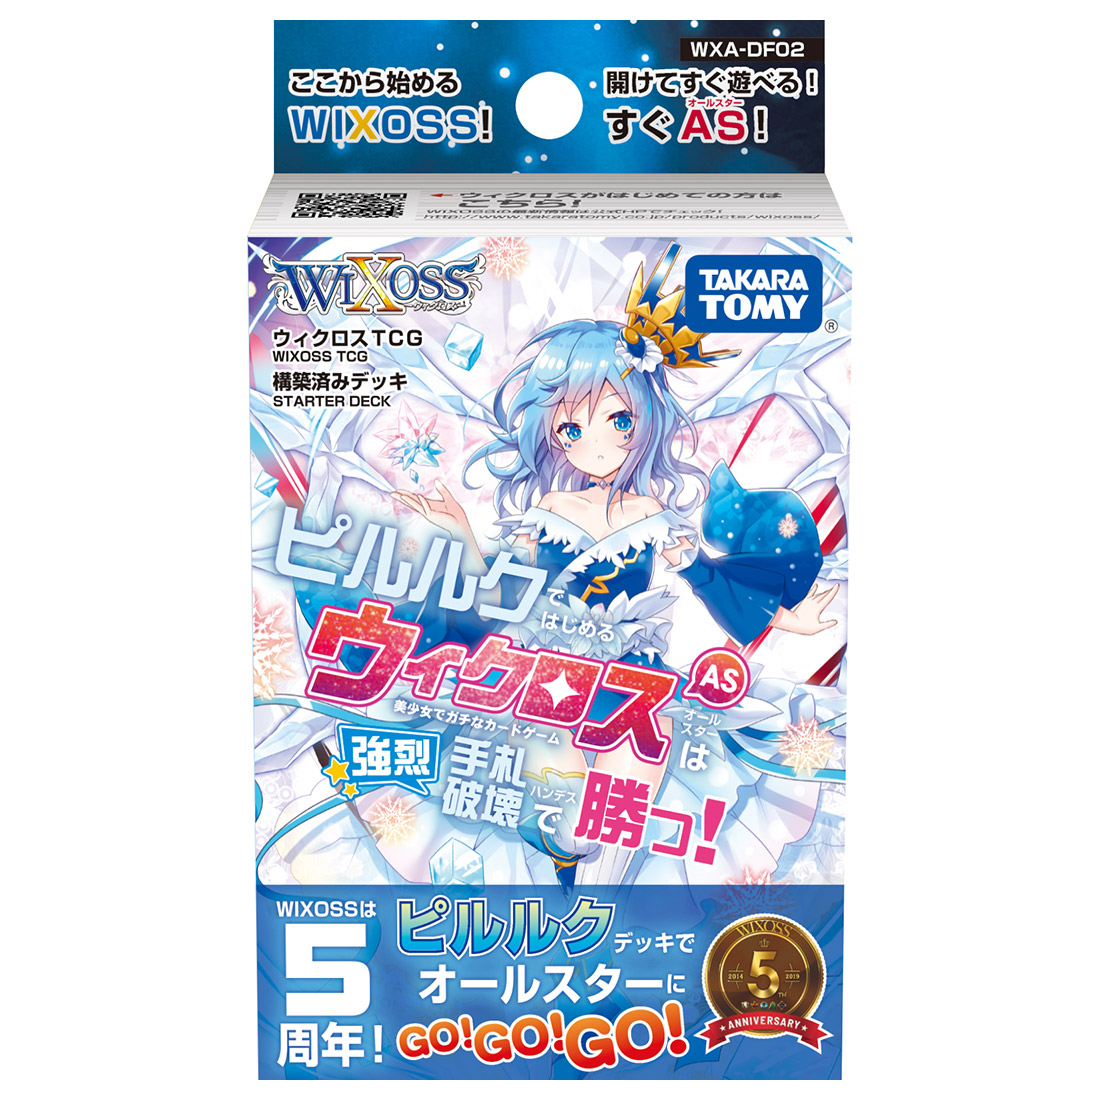 WXA-DF02 Start WIXOSS All-Star with Piruluk and Win with Intense Hand Destruction!